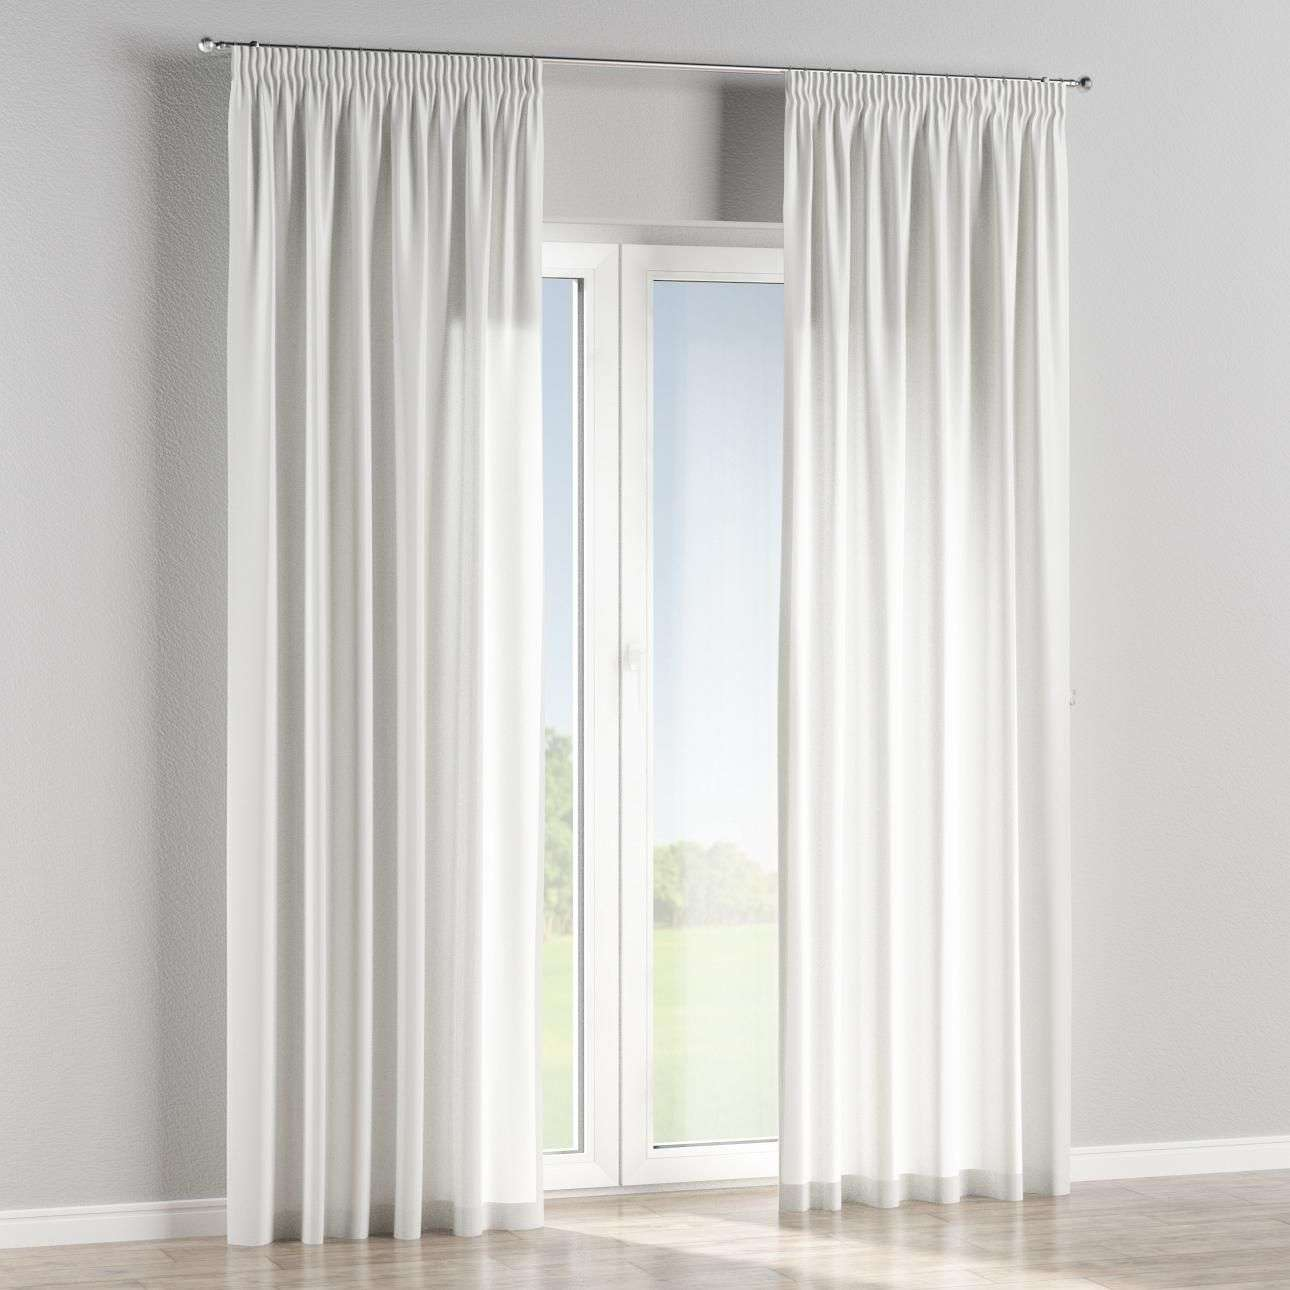 Pencil pleat lined curtains in collection Norge, fabric: 140-92